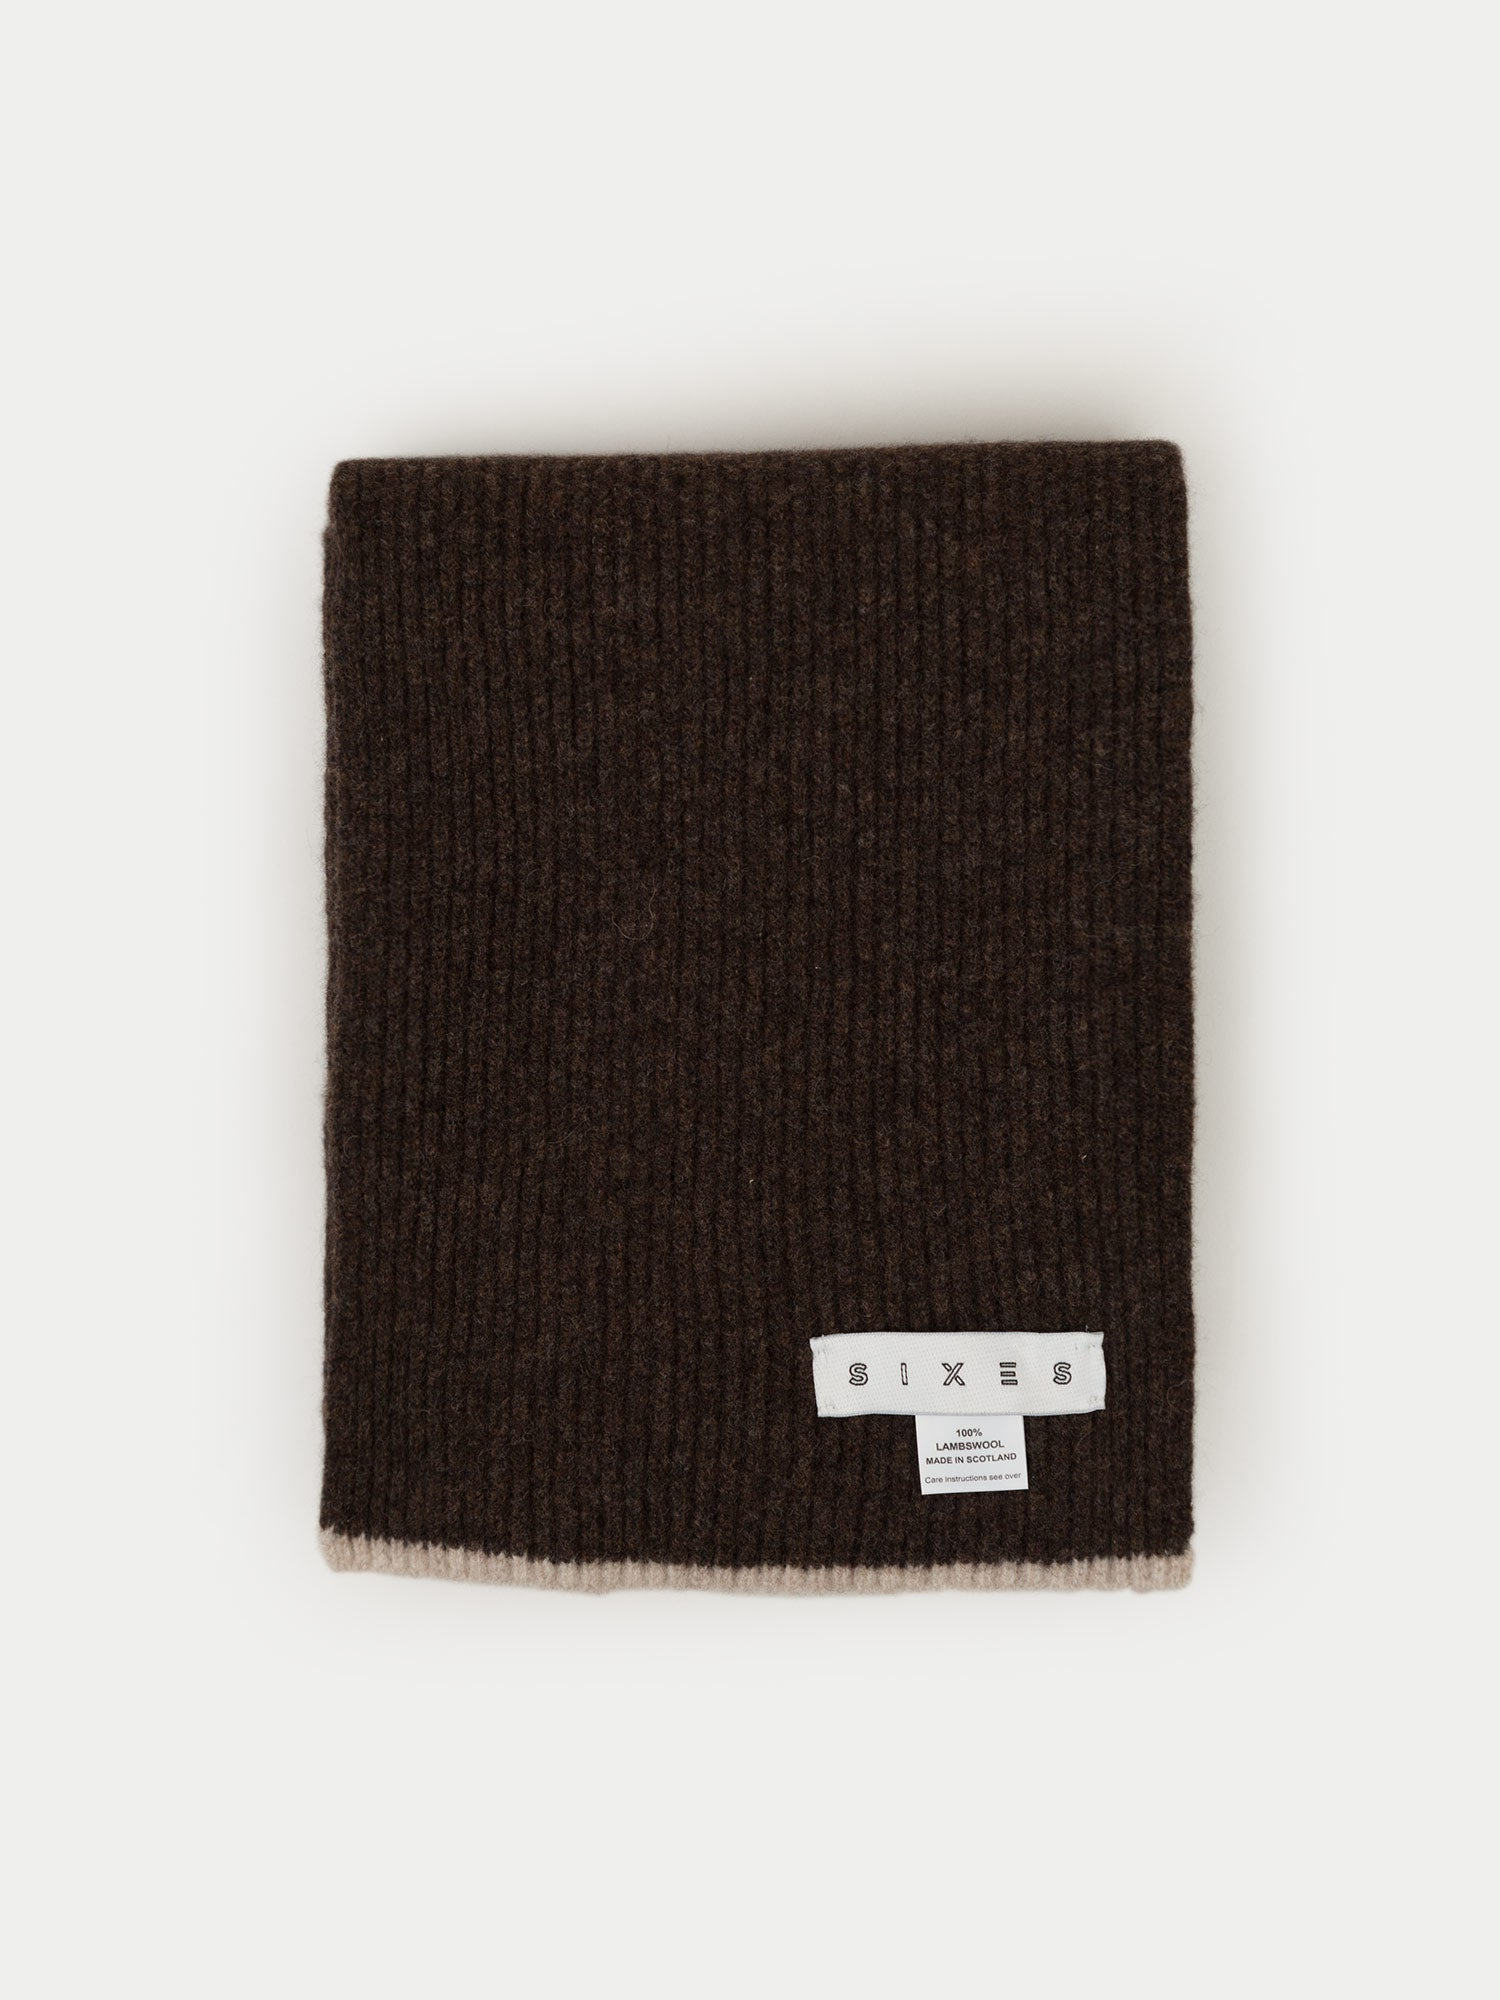 SIXES Lambswool Scarf (Brown & Oatmeal)